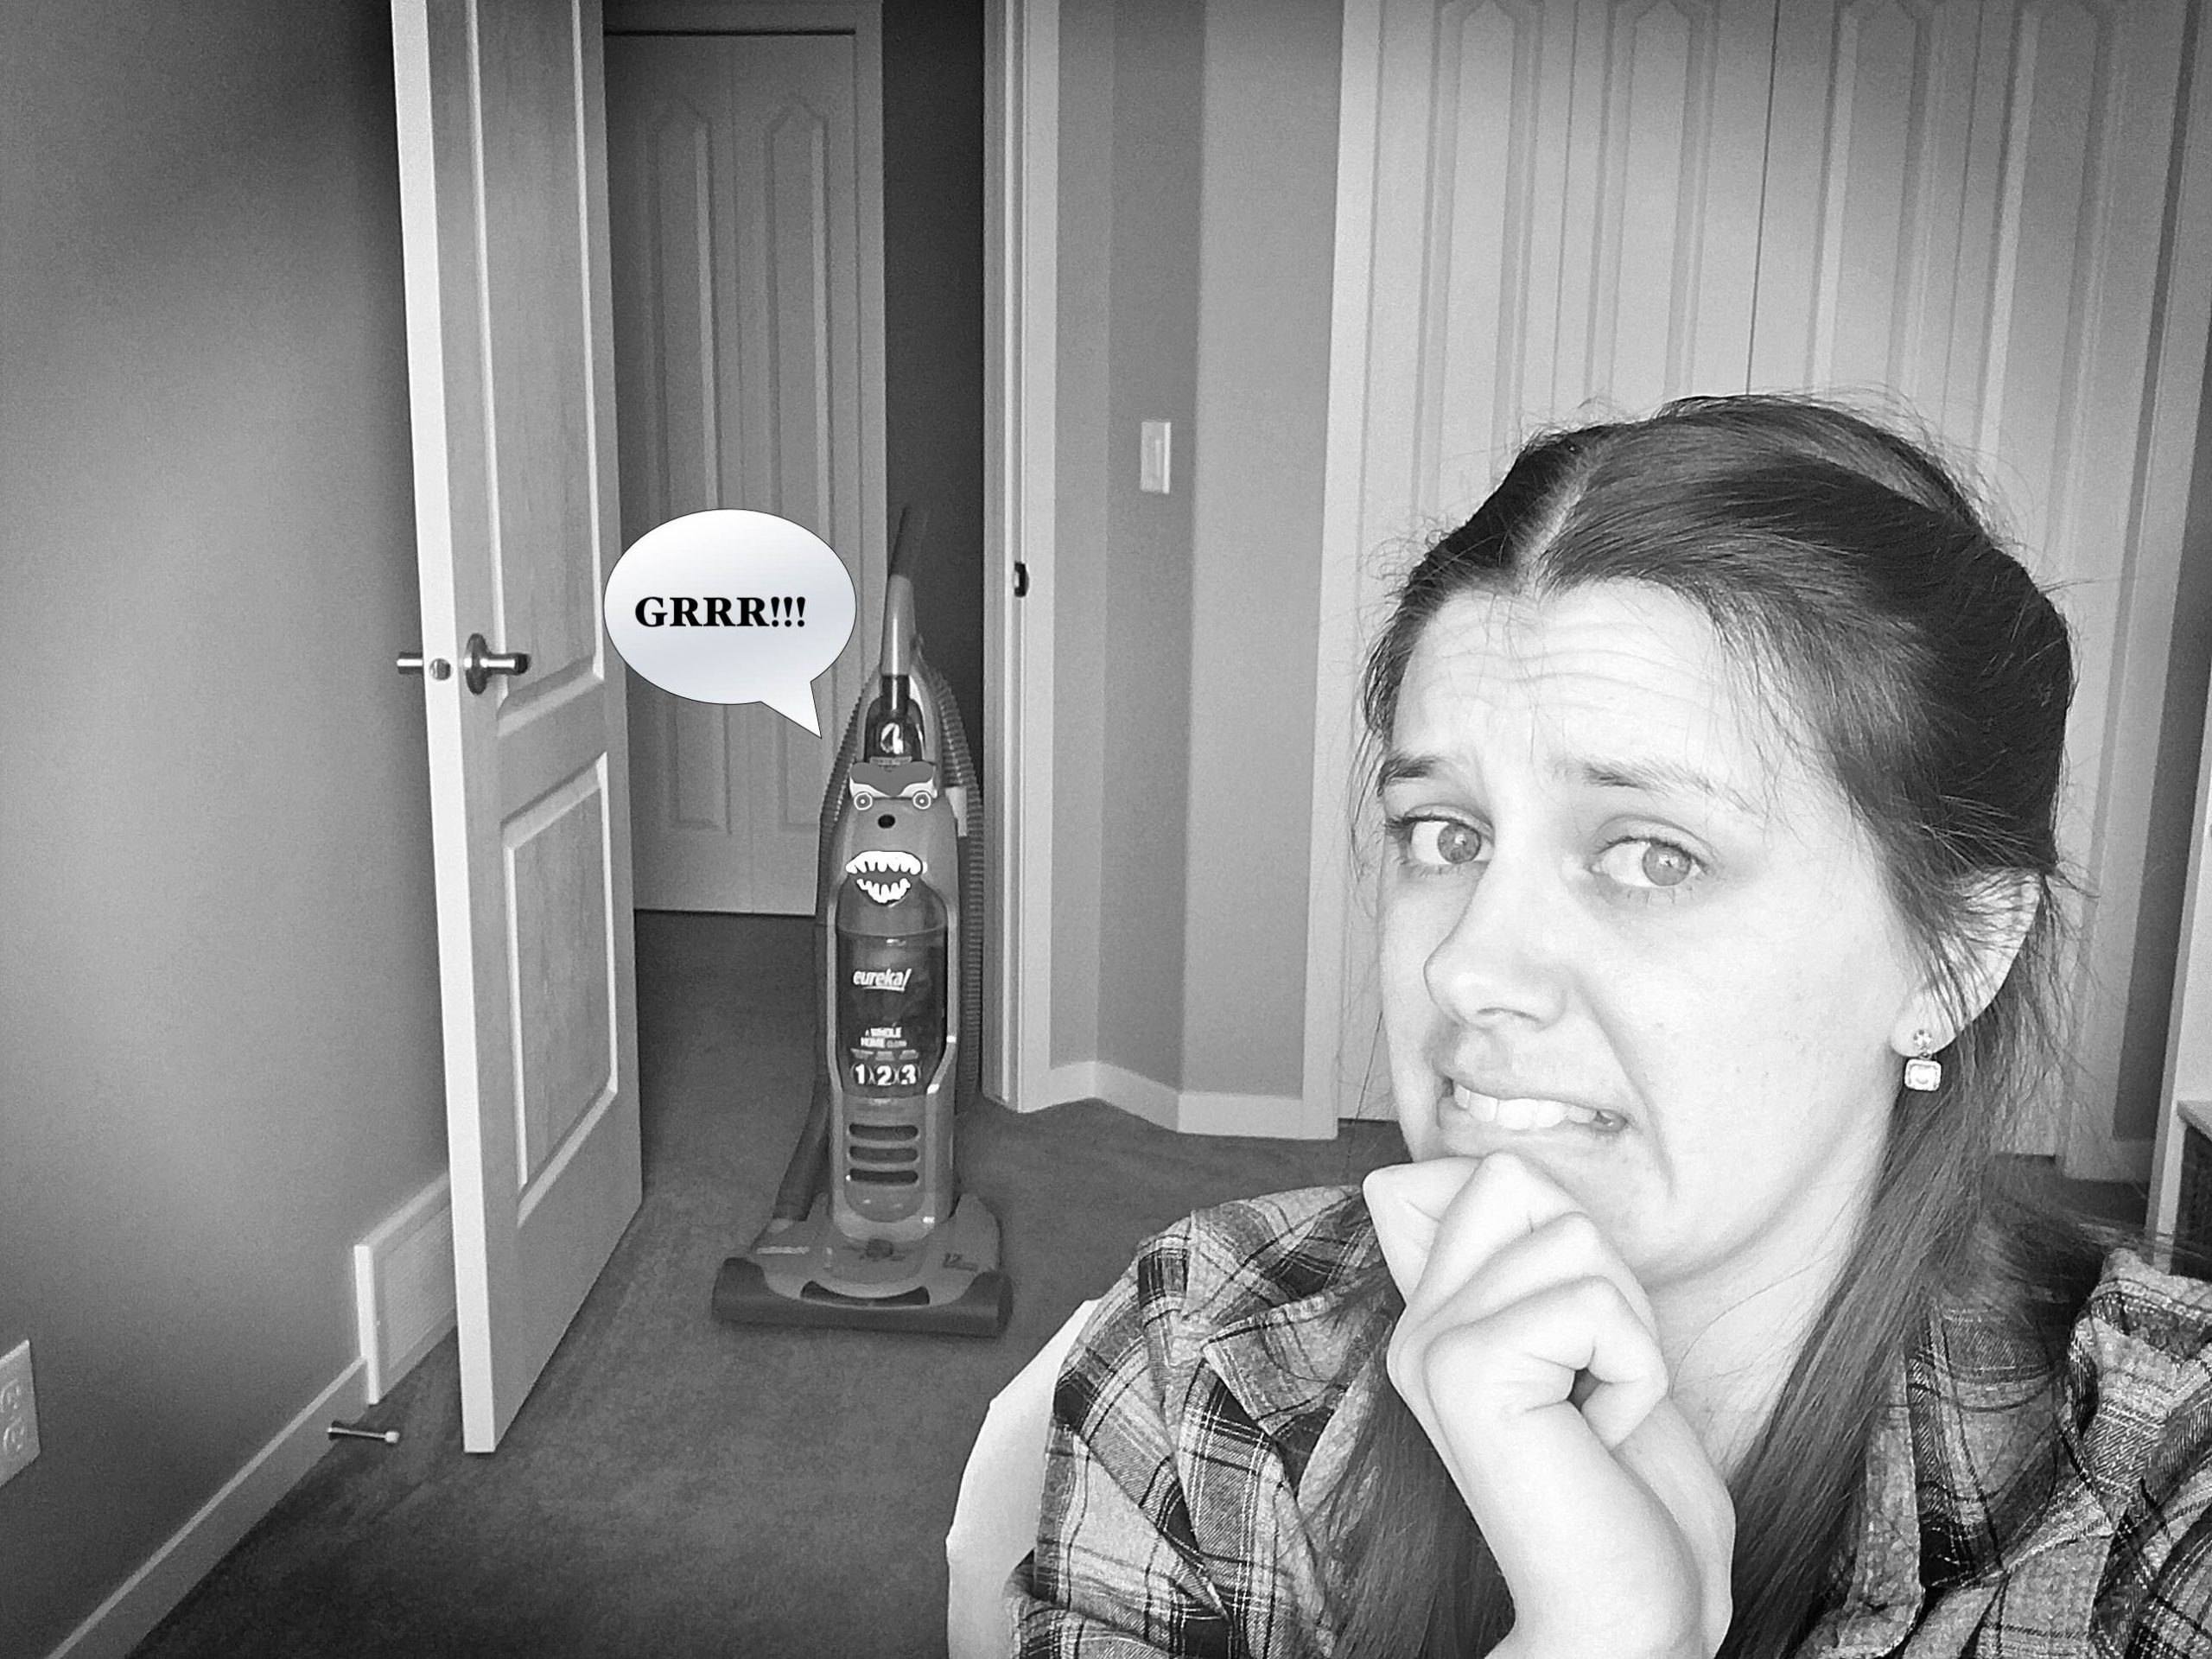 A photo of Sarah sitting at her desk, with an evil vacuum cleaner approaching her from behind and saying the word Grrr! in a speech bubble.